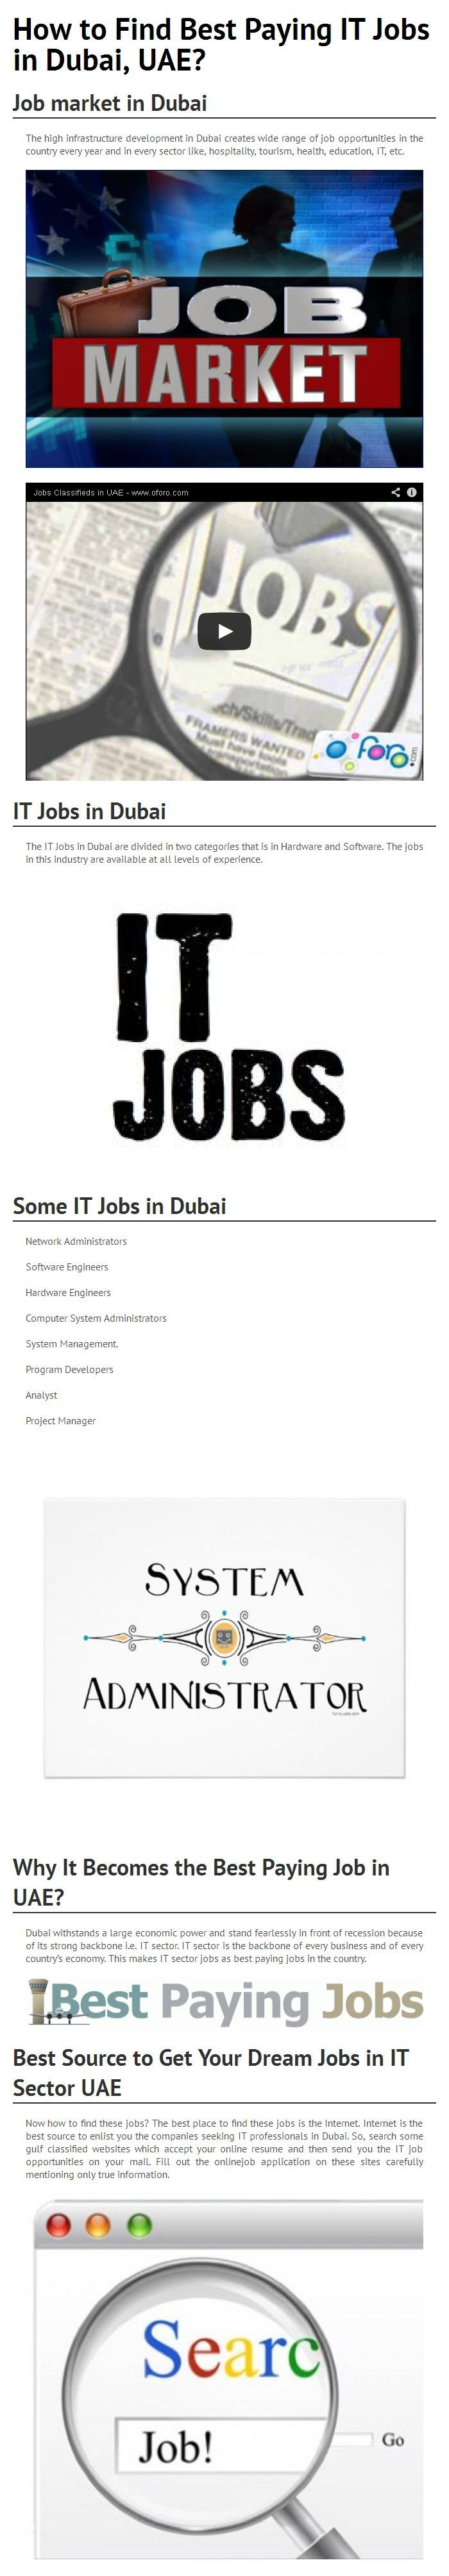 best images about govjobs ae language jobs jobs 17 best images about govjobs ae language jobs jobs and dubai